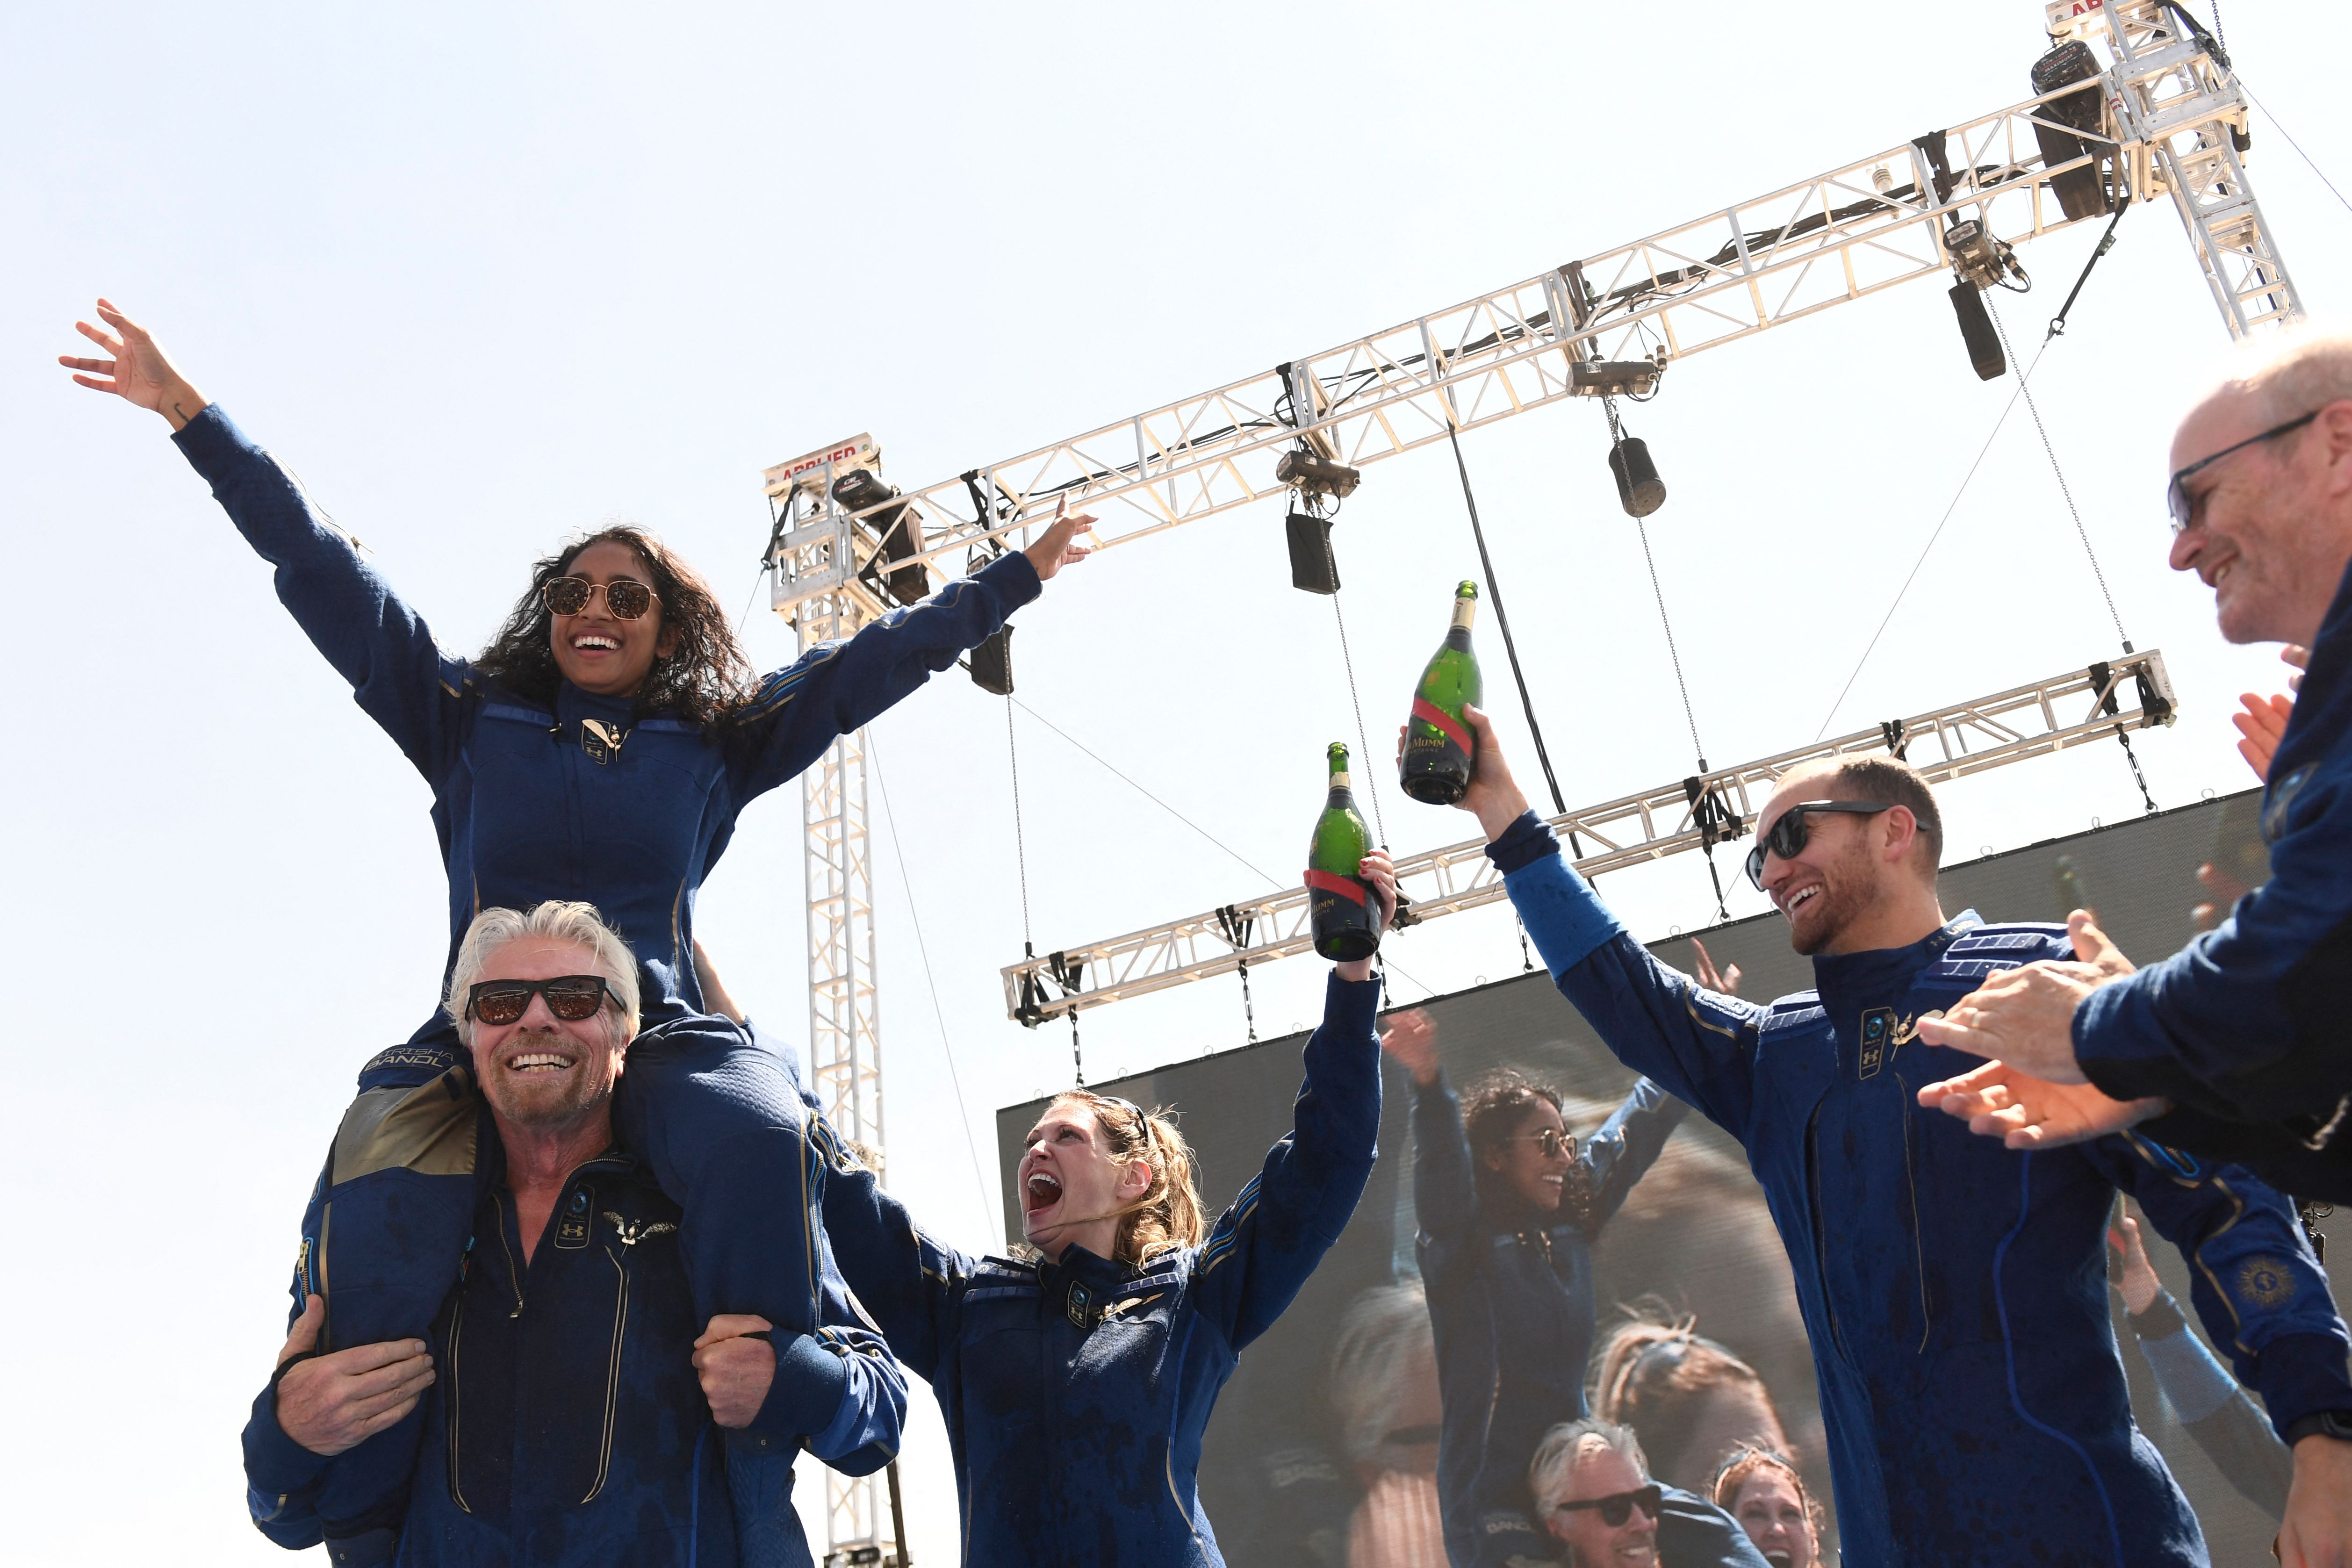 Virgin Galactic founder Sir Richard Branson(L), with Sirisha Bandla on his shoulders, cheers with crew members after flying into space aboard a Virgin Galactic vessel, a voyage he described as the  experience of a lifetime.